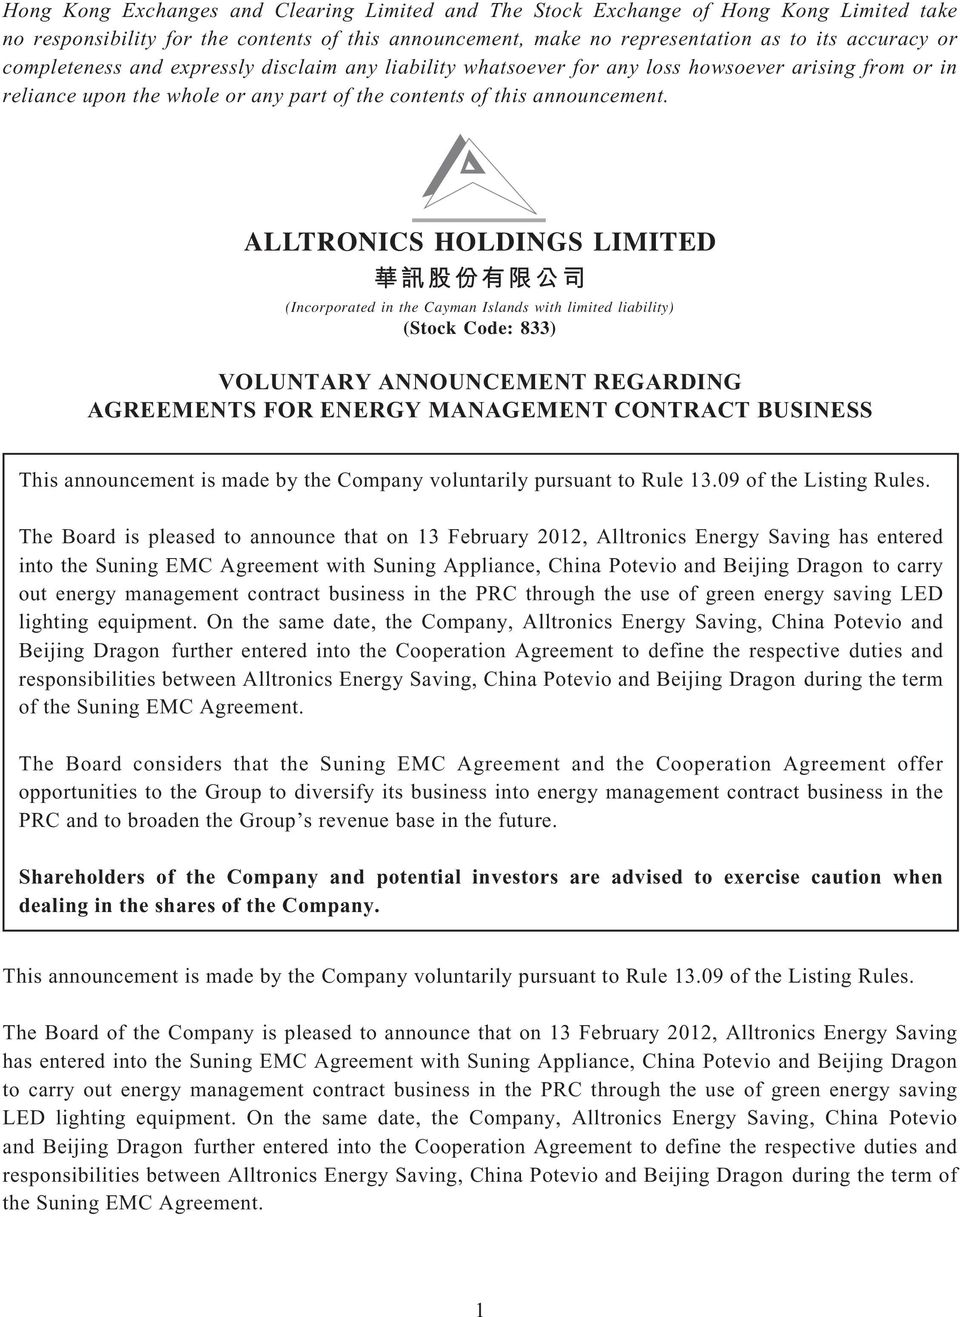 ALLTRONICS HOLDINGS LIMITED (Incorporated in the Cayman Islands with limited liability) (Stock Code: 833) VOLUNTARY ANNOUNCEMENT REGARDING AGREEMENTS FOR ENERGY MANAGEMENT CONTRACT BUSINESS This